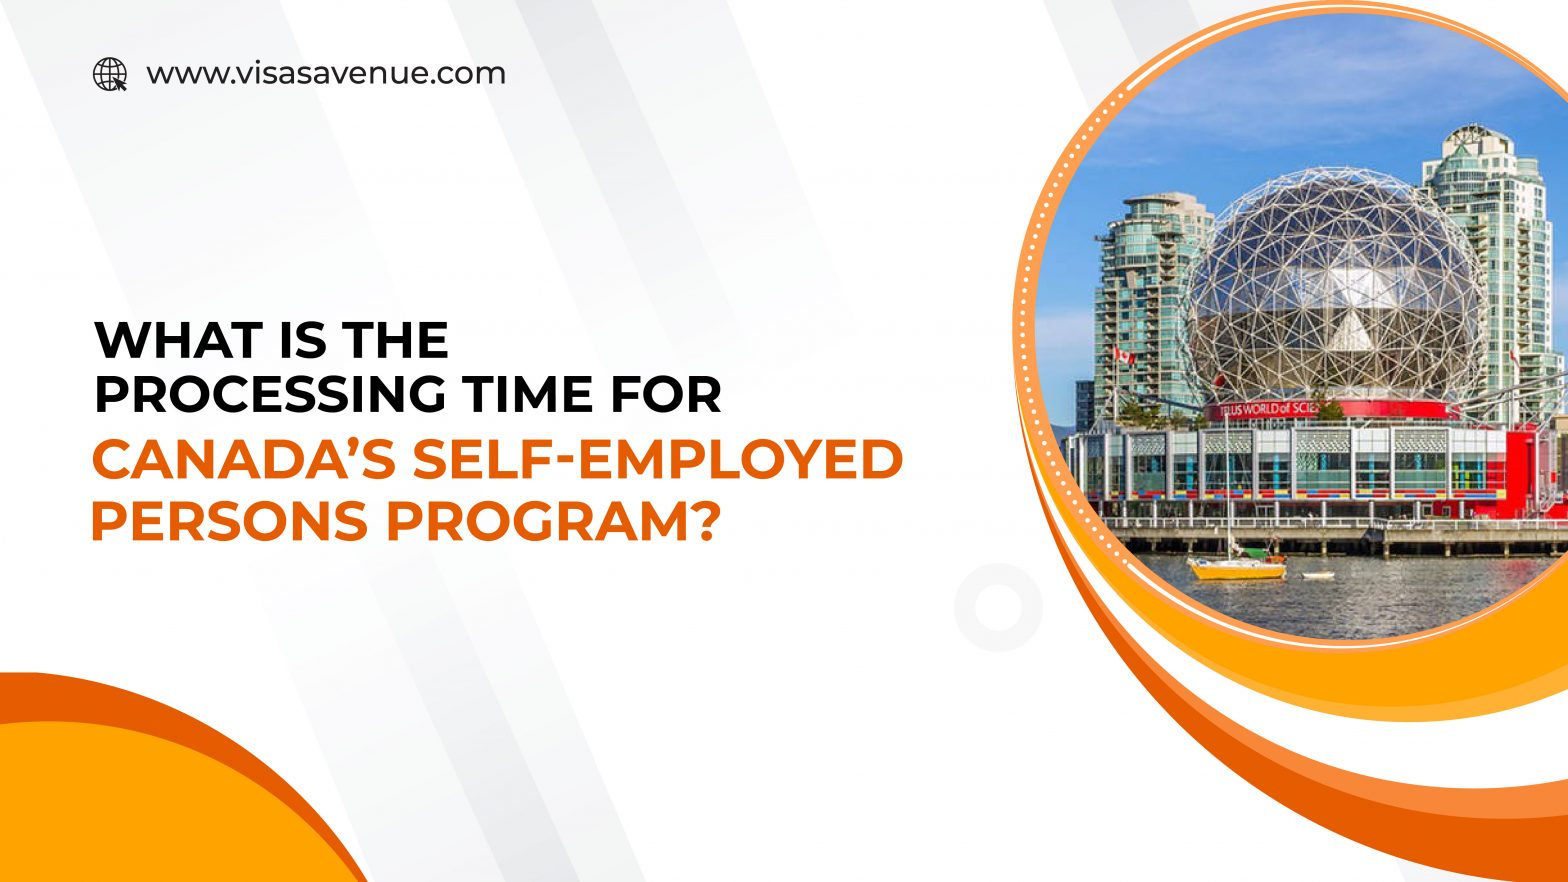 What is the processing time for Canada's Self-Employed Persons Program?